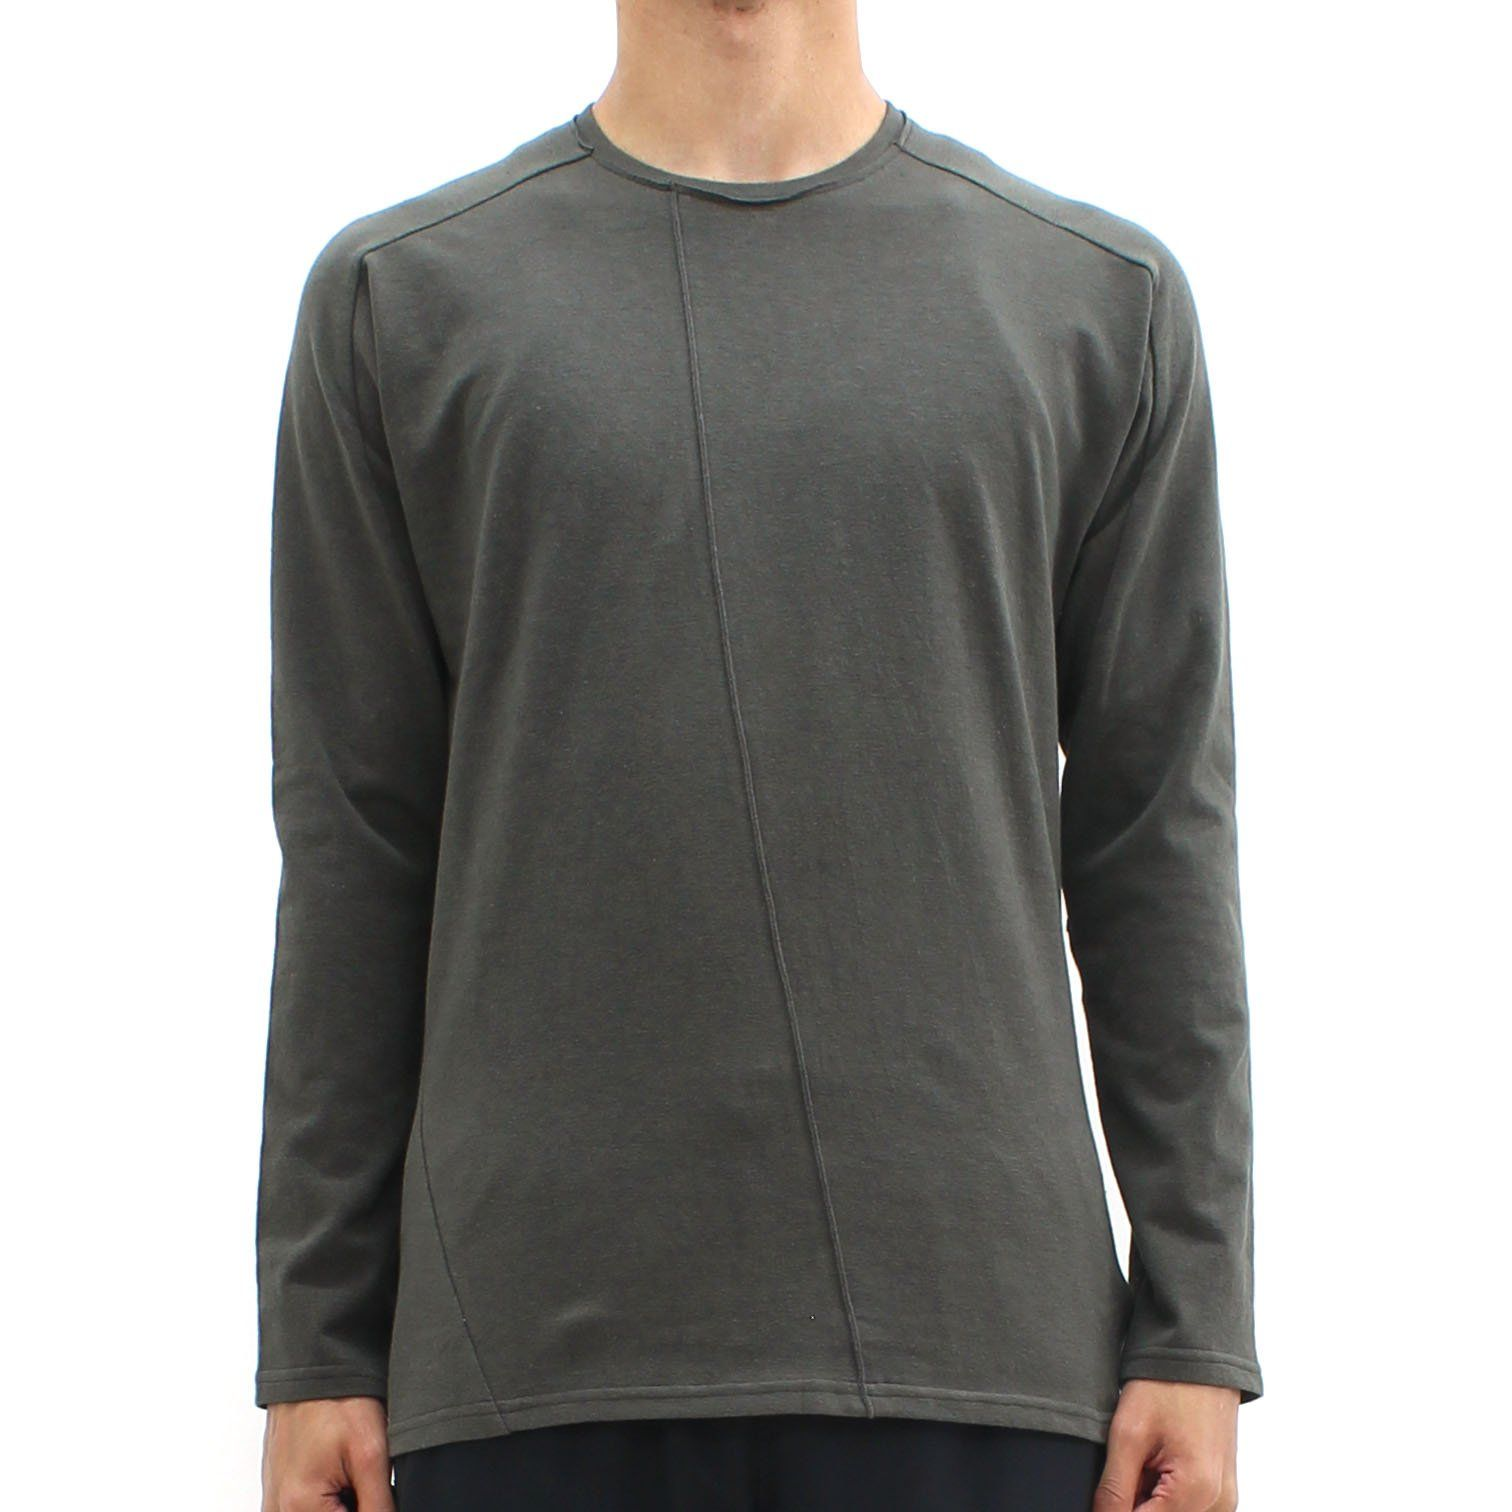 Hannibal Cut And Sew LS Tee Green